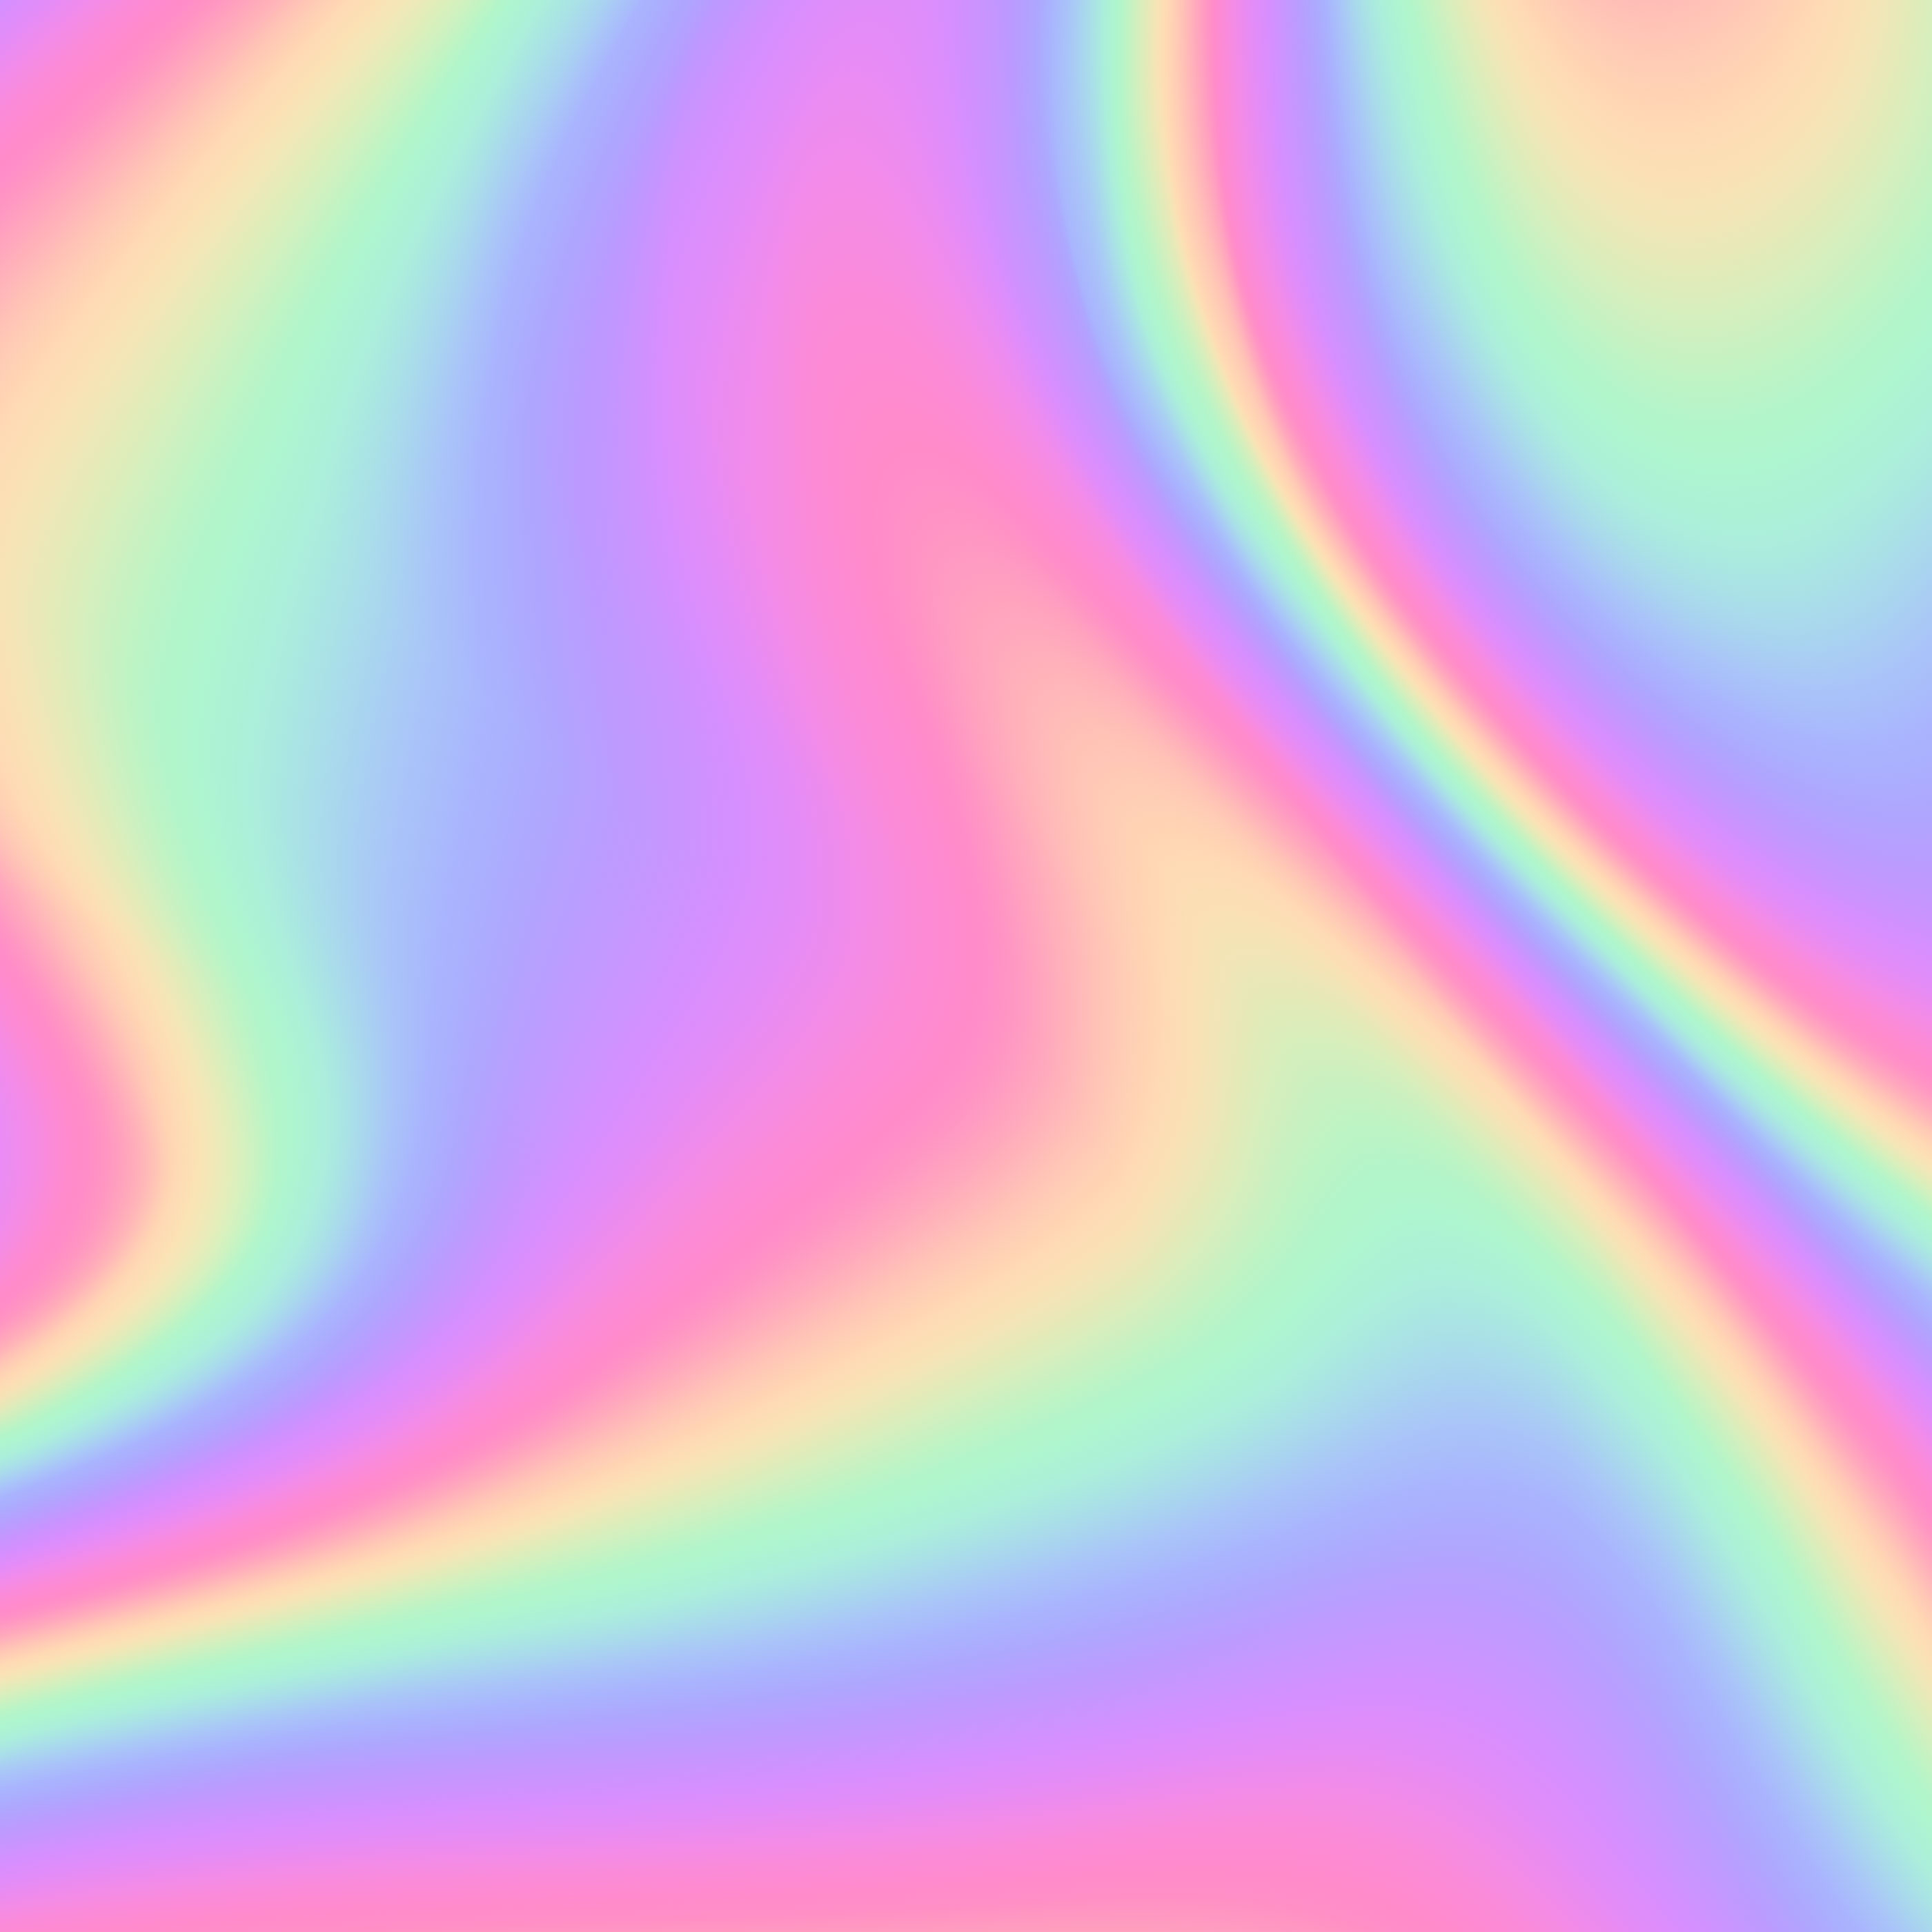 Vibrant Business Card: Abstract Holographic Background Vector 643030